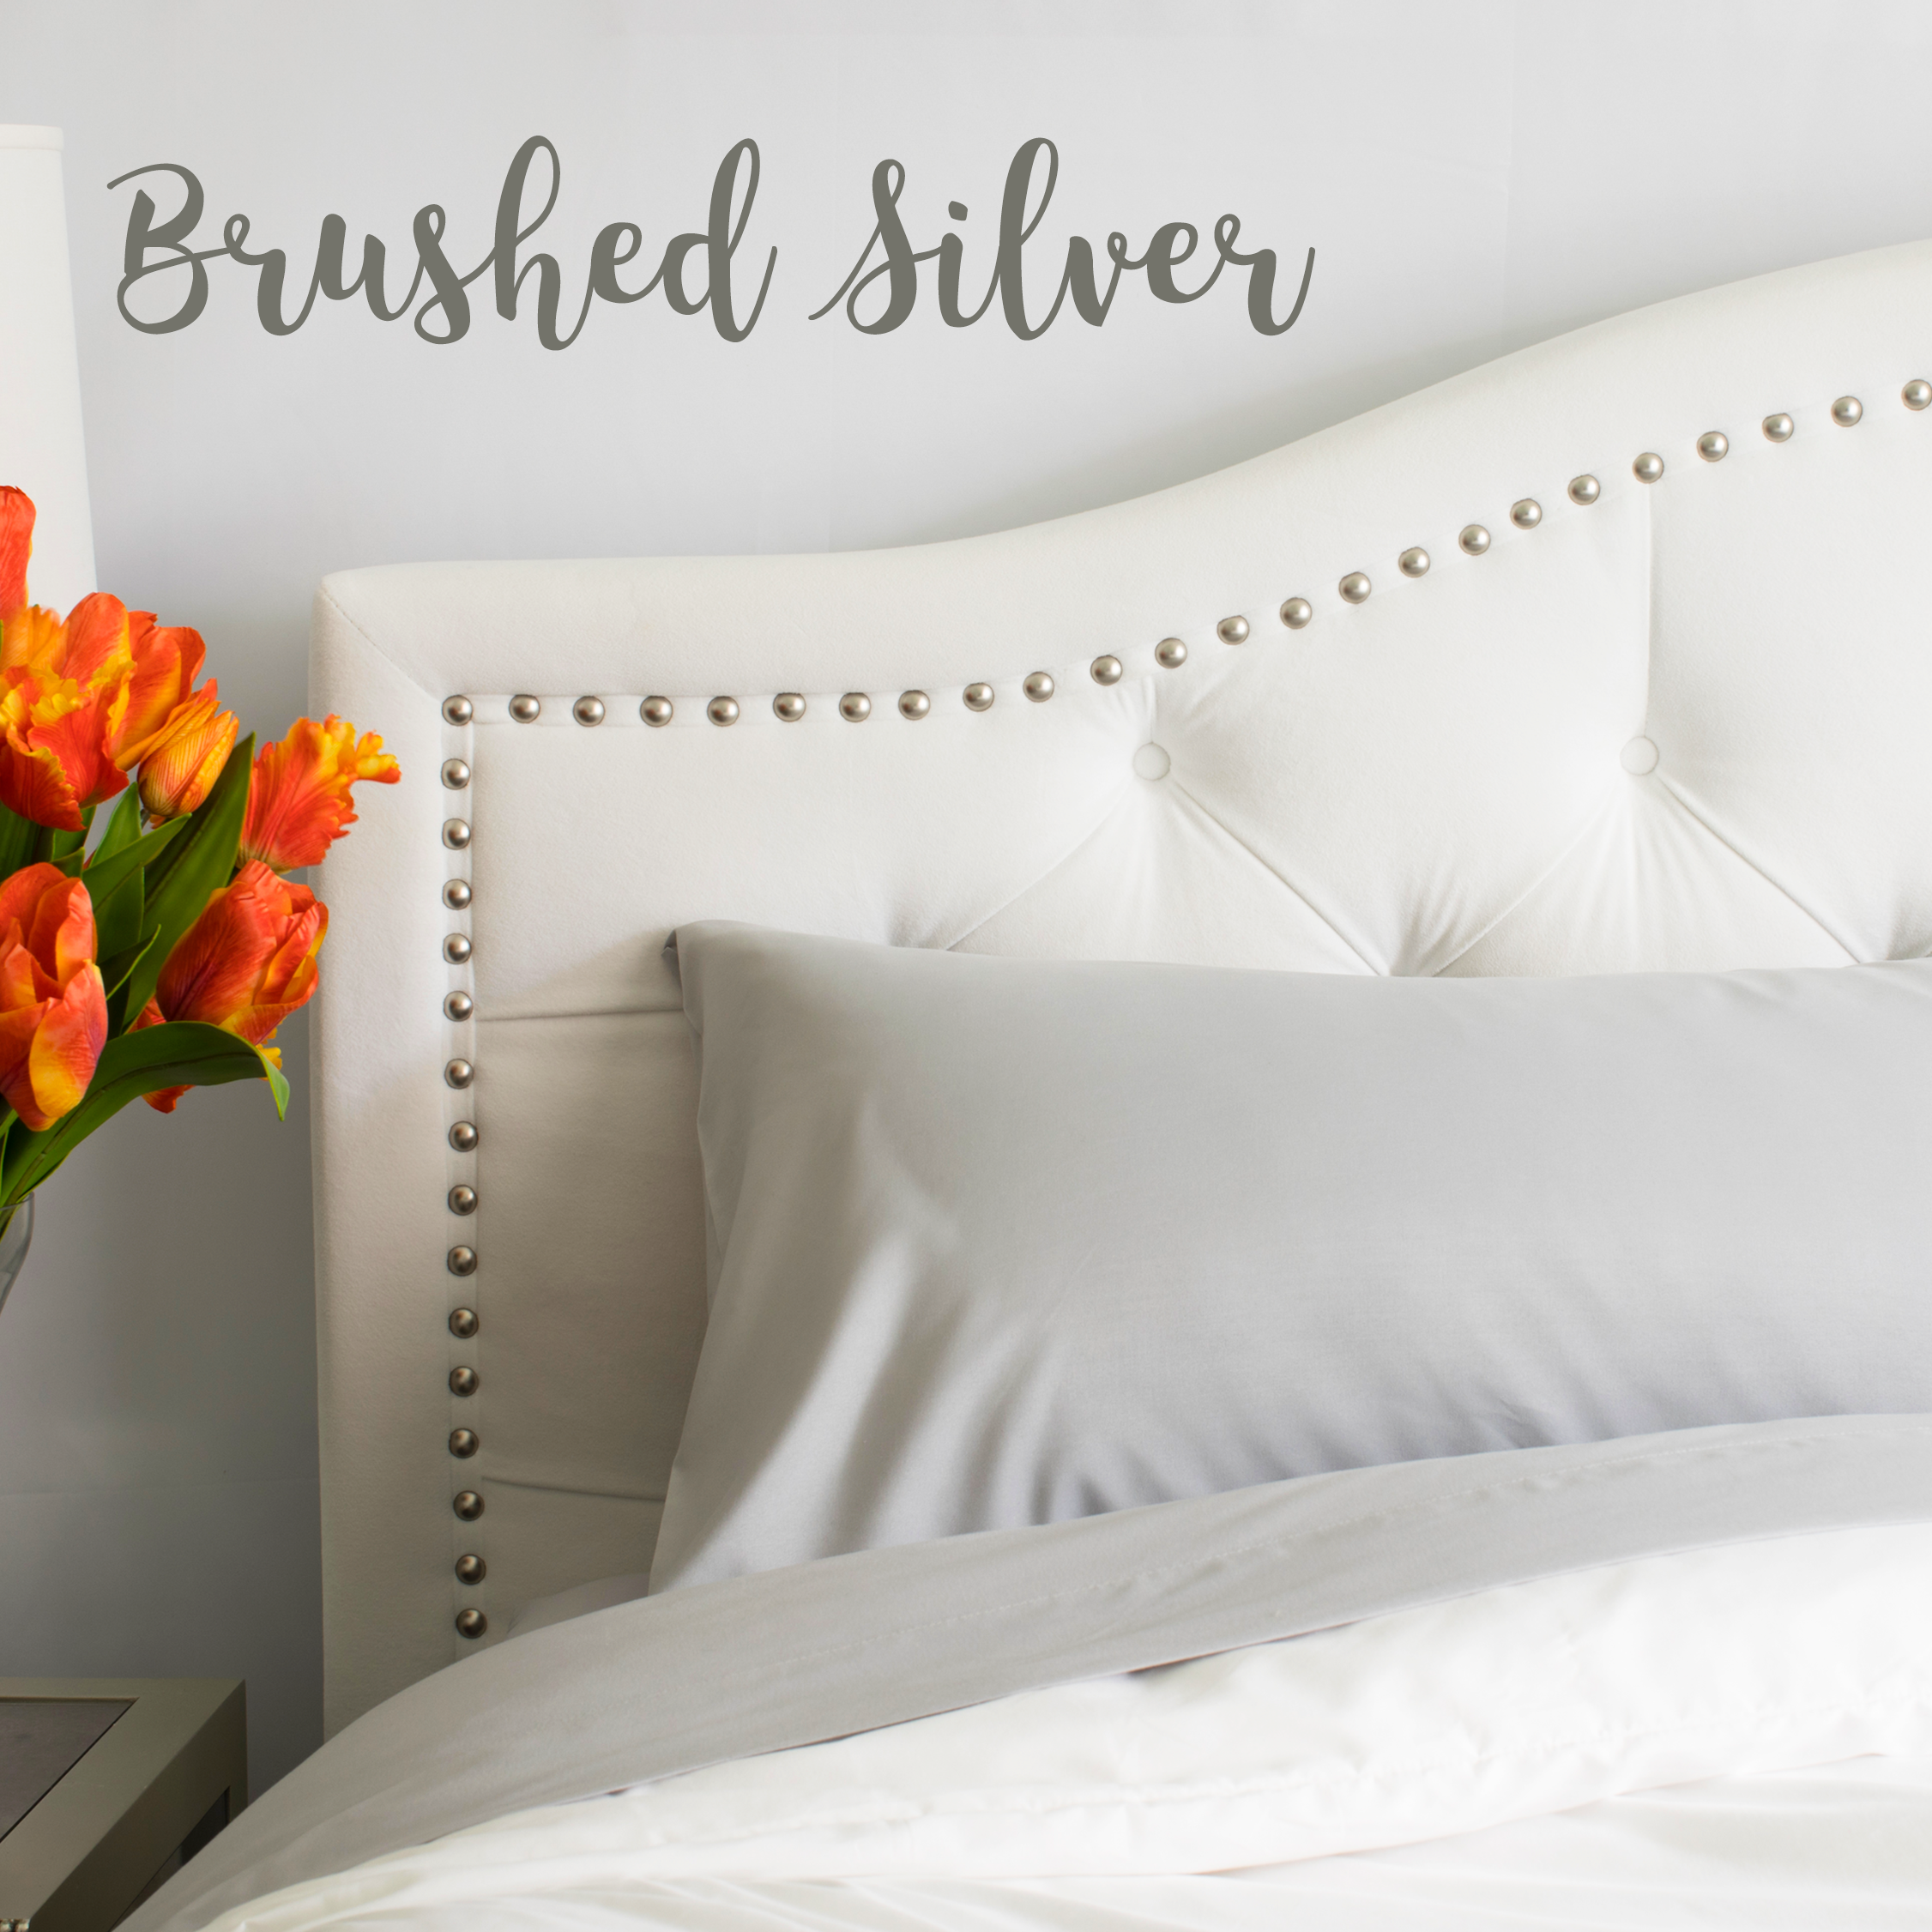 Brushed Silver Split King Sheet Set - Estimated to Ship by 4/30